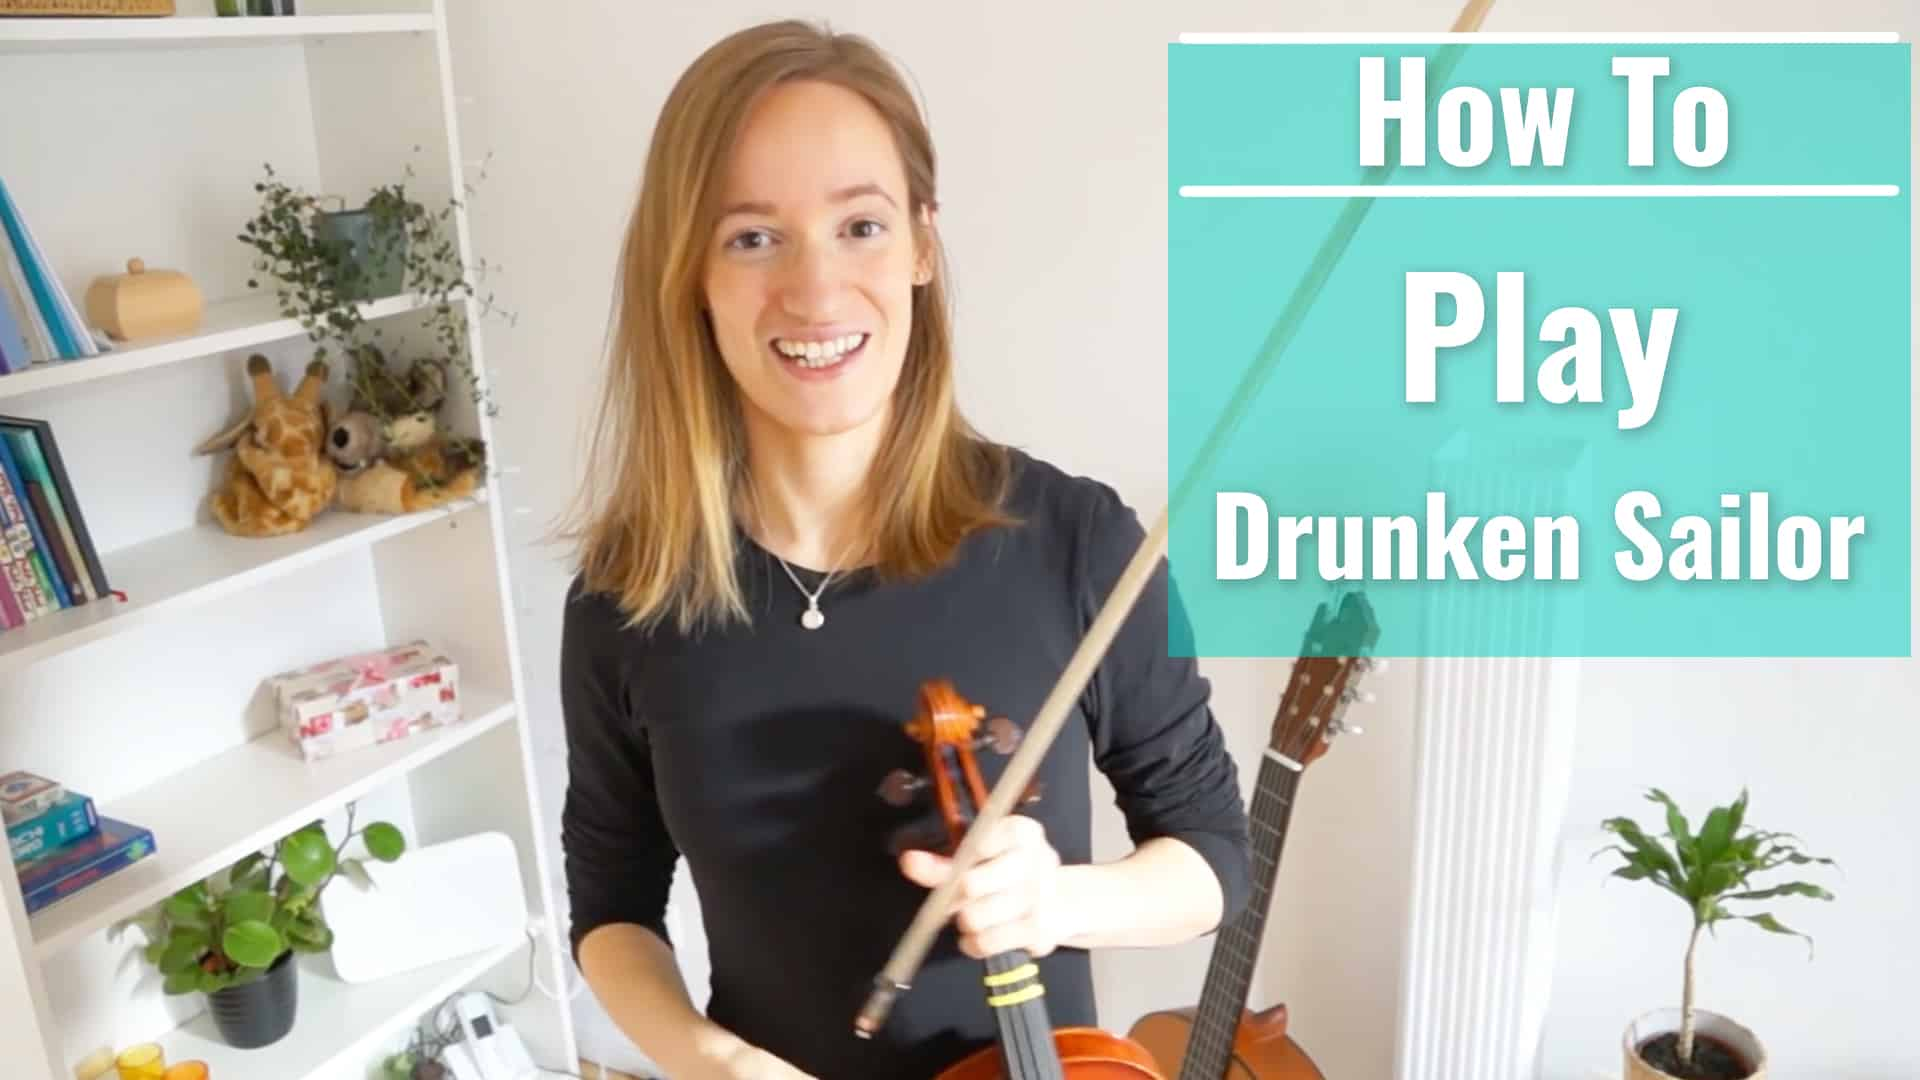 How to play Drunken Sailor